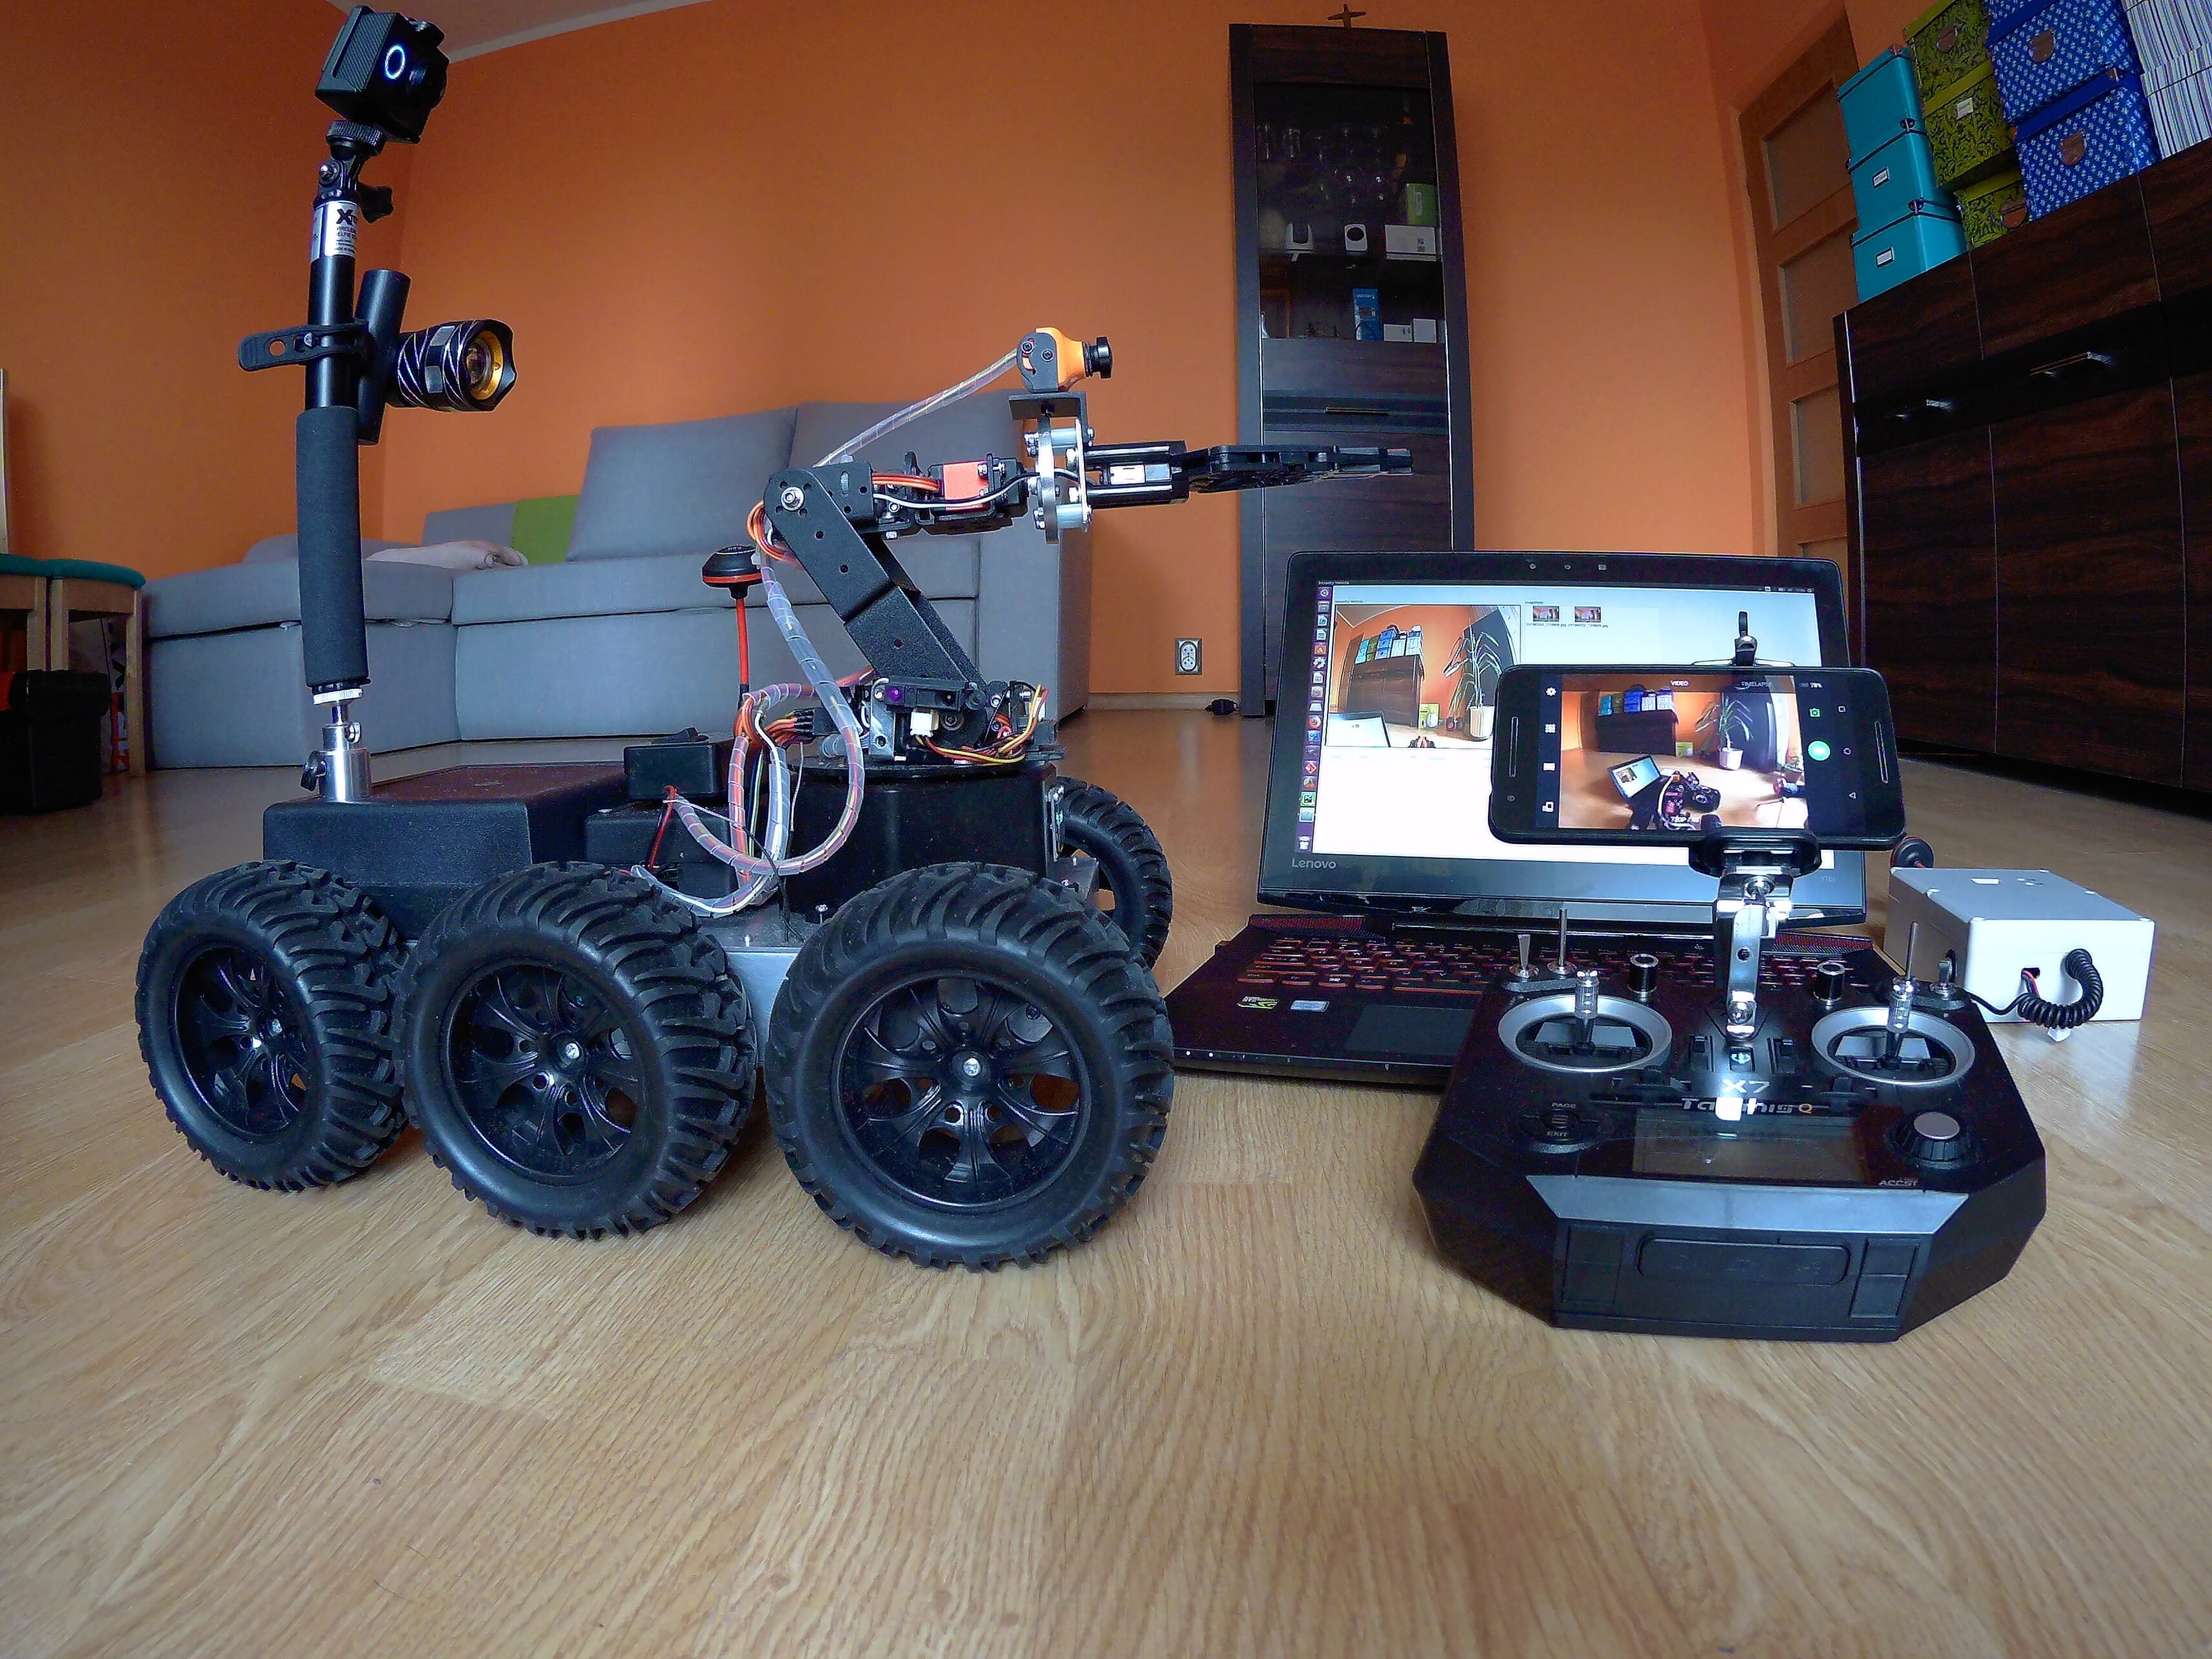 Picture of Testing Preview From Wifi and Fpv Cameras